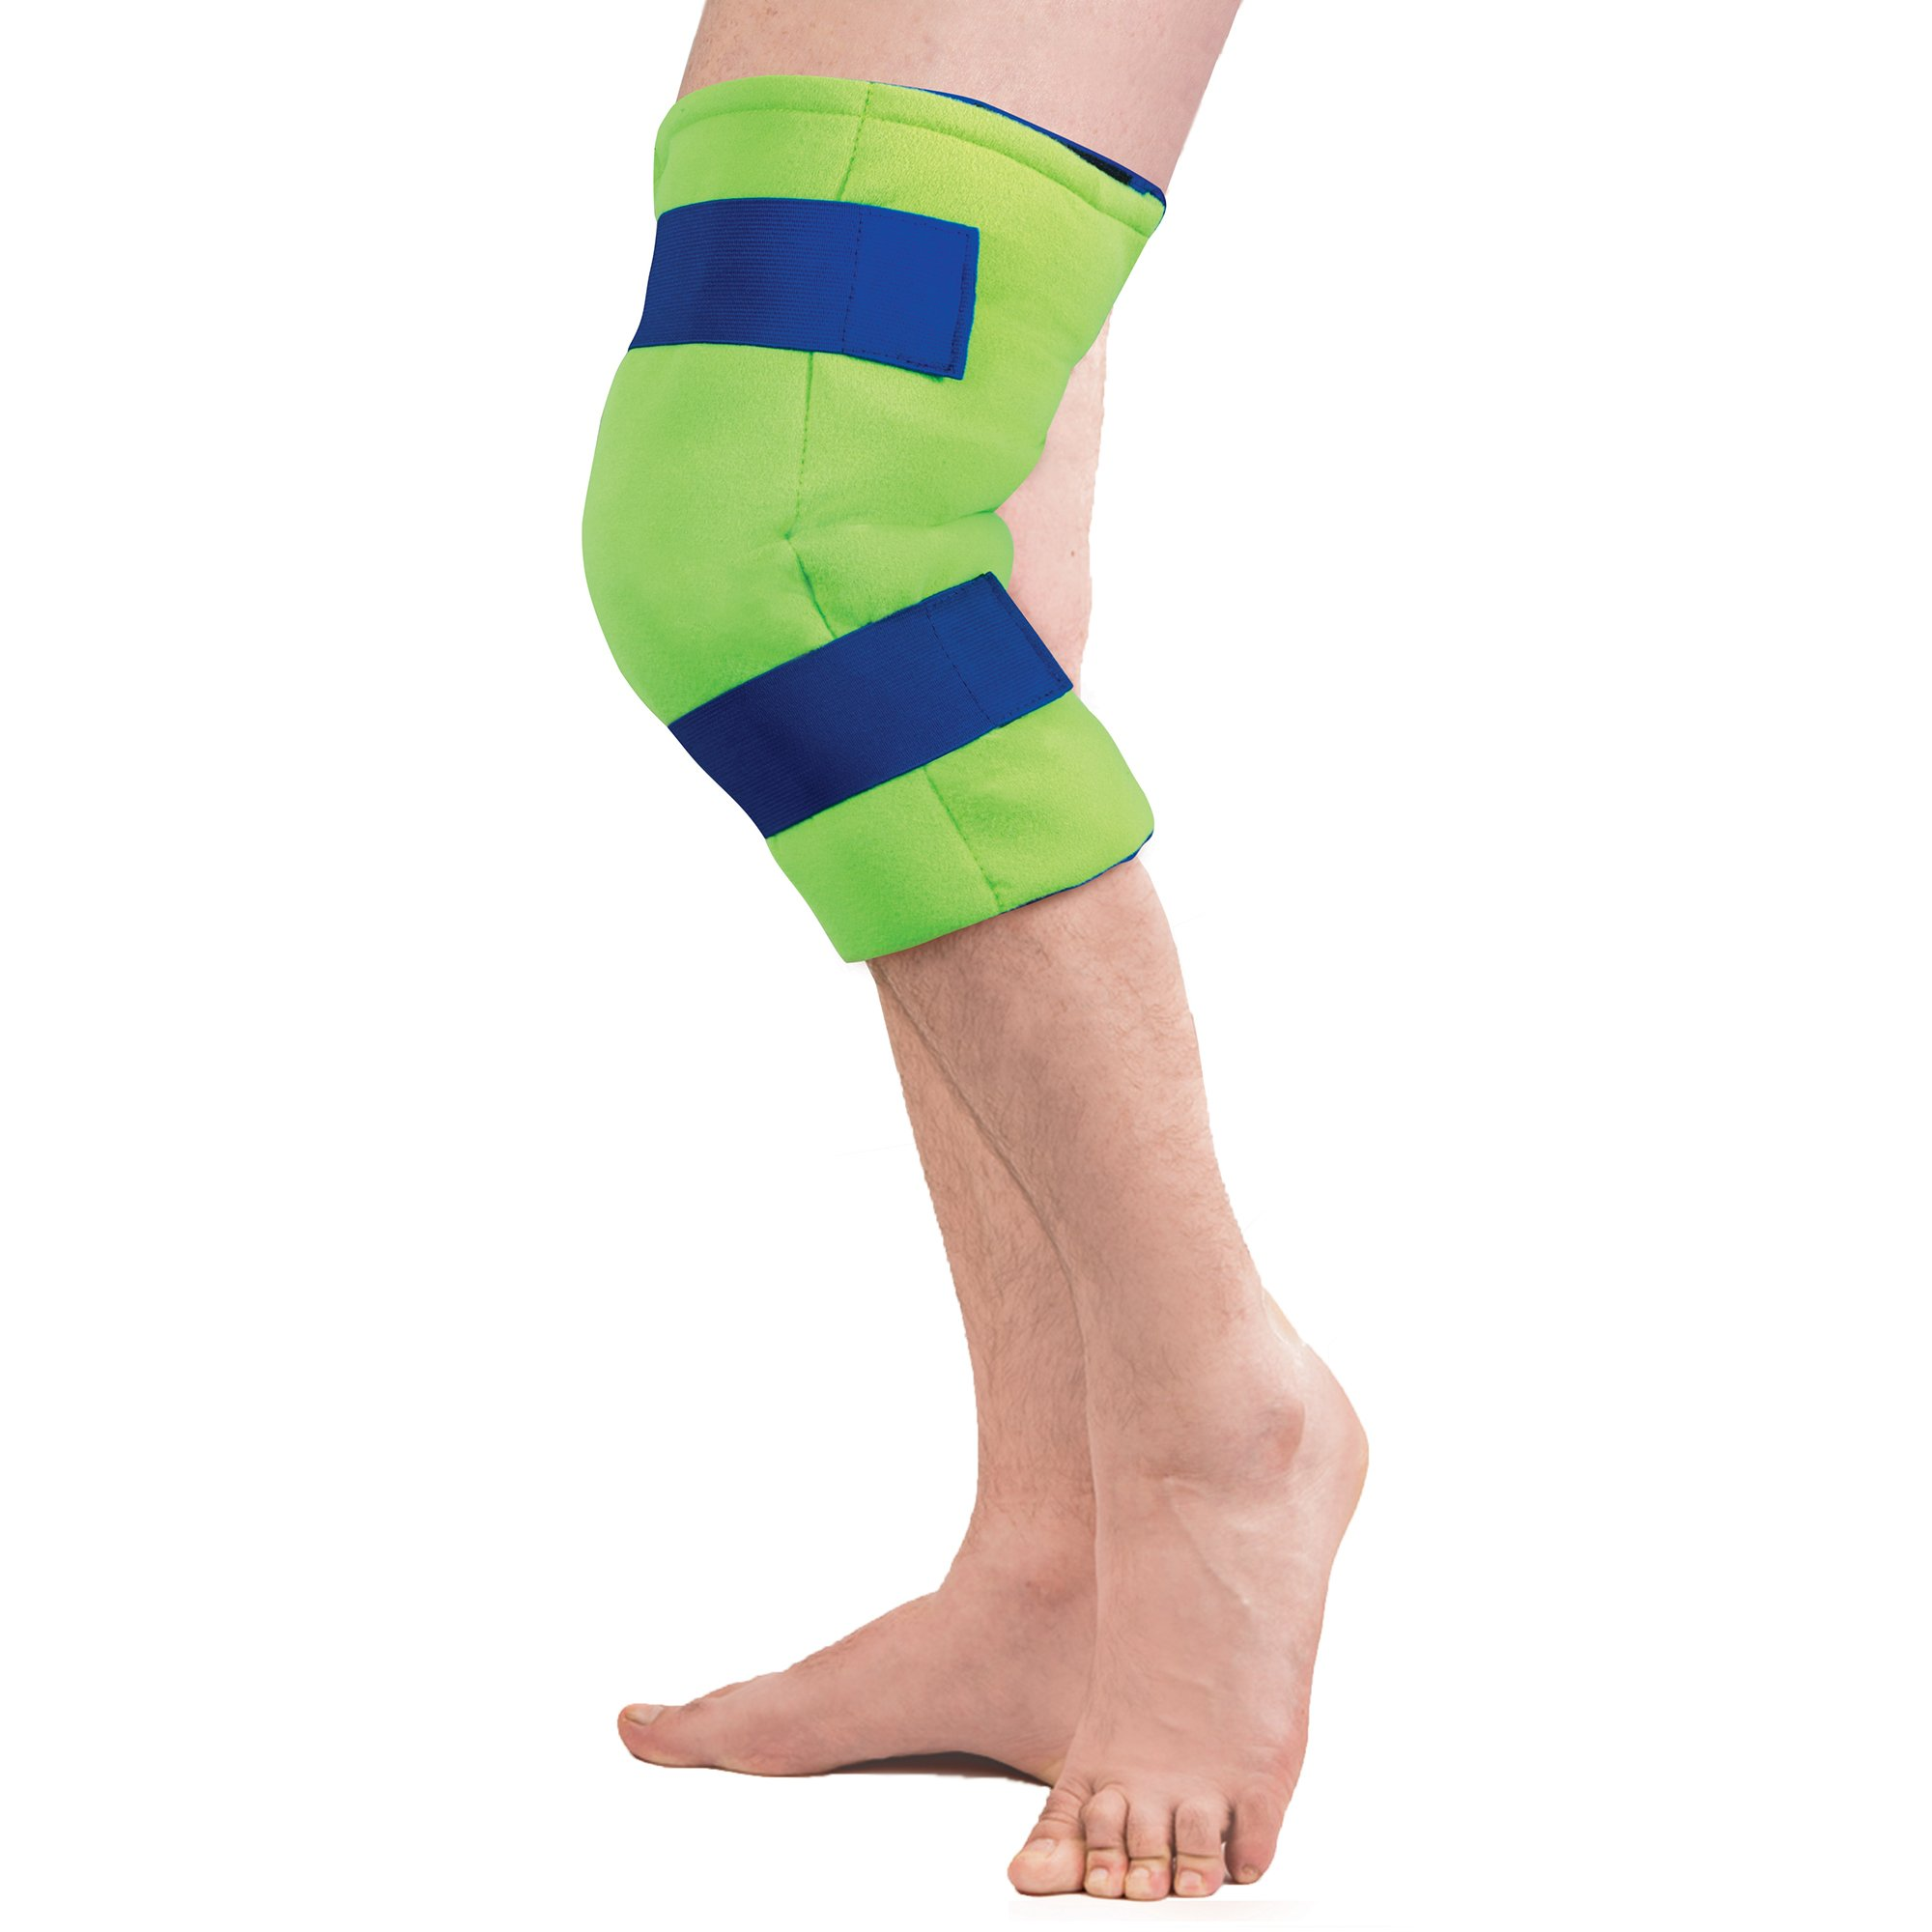 Polar ICE Standard Knee WRAP by Brownmed